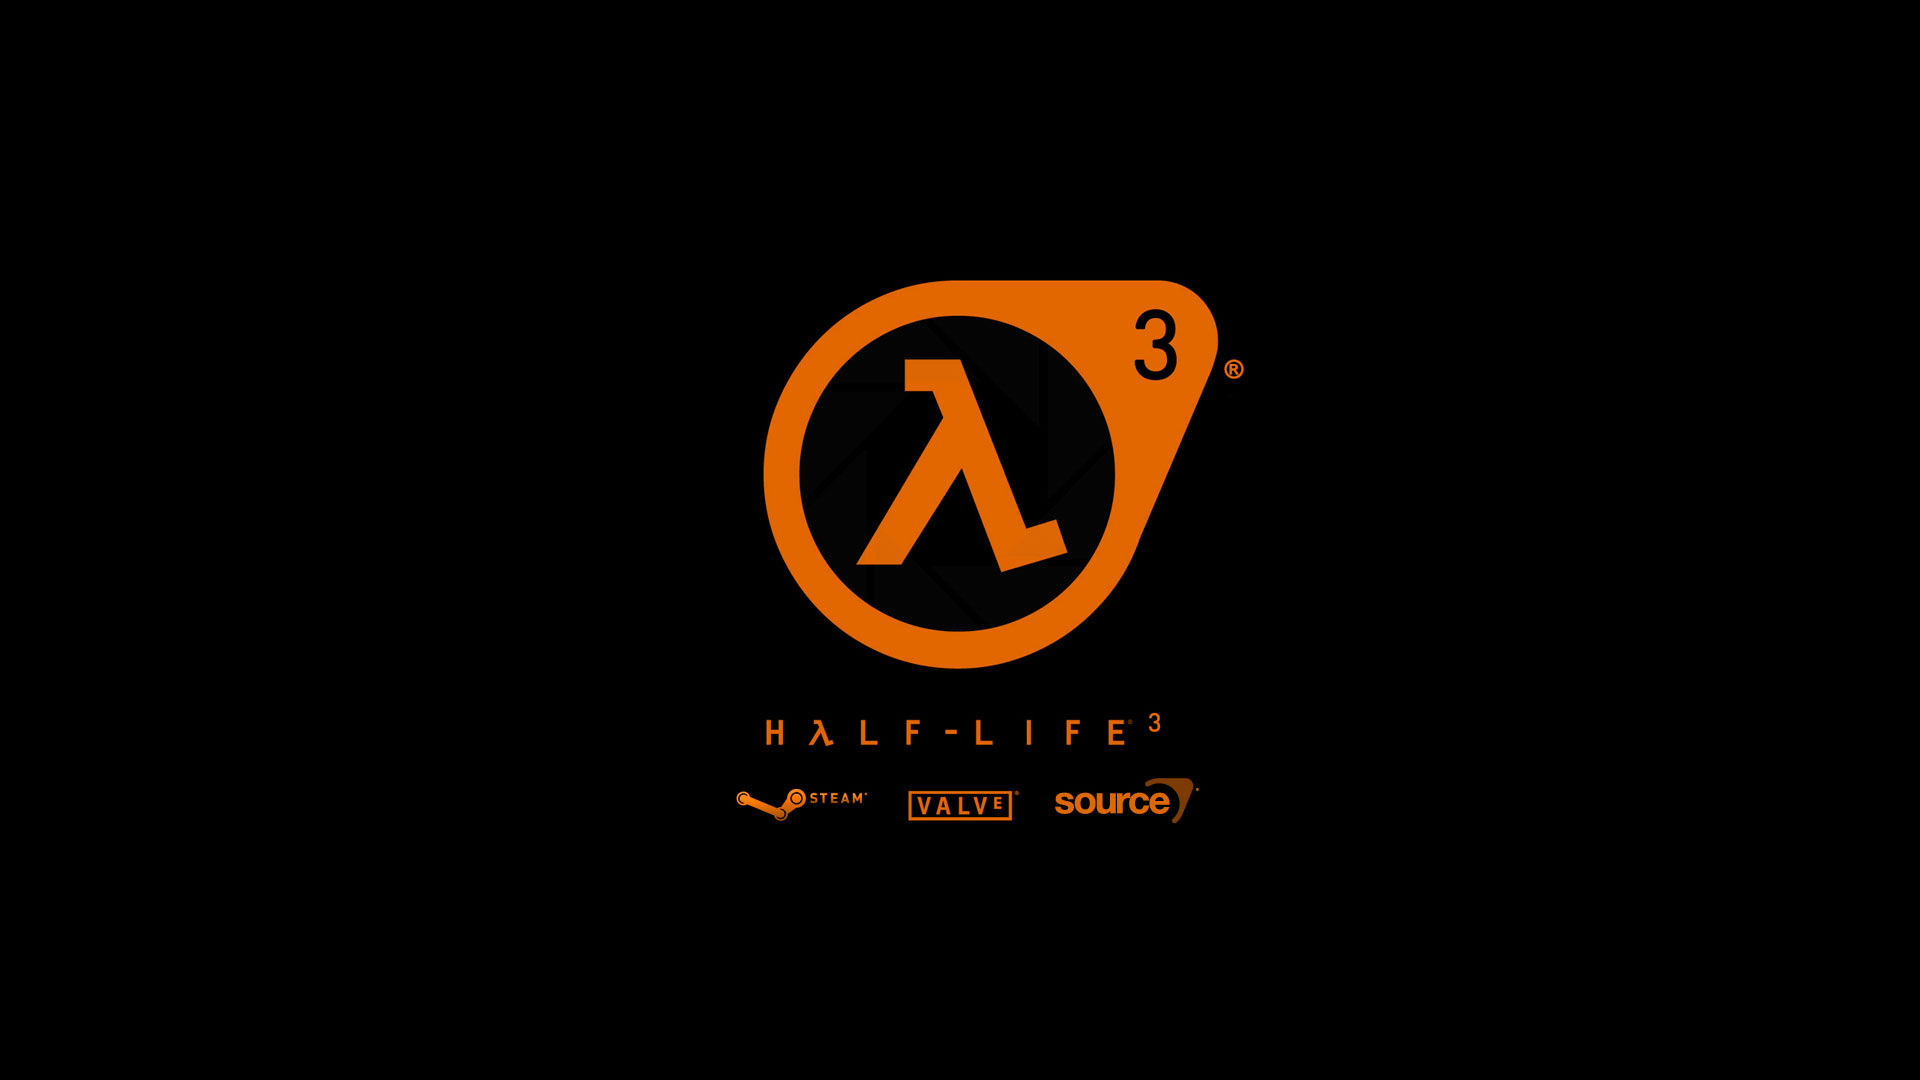 Sly half life 3 poster appears at gamescom entrance - Tf2 logo wallpaper ...